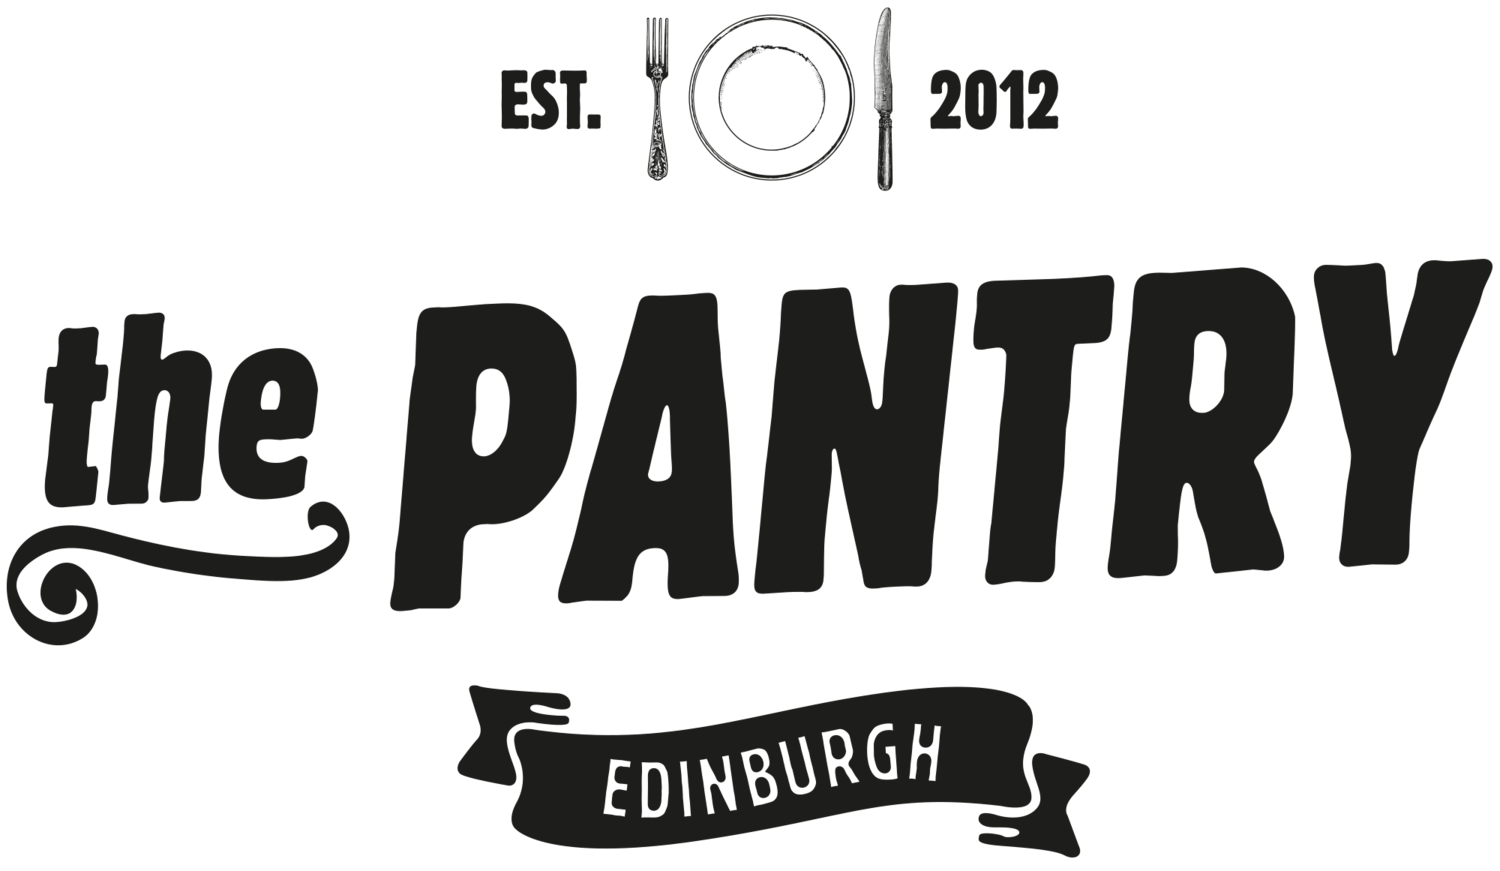 Client logo - The Pantry Edinburgh